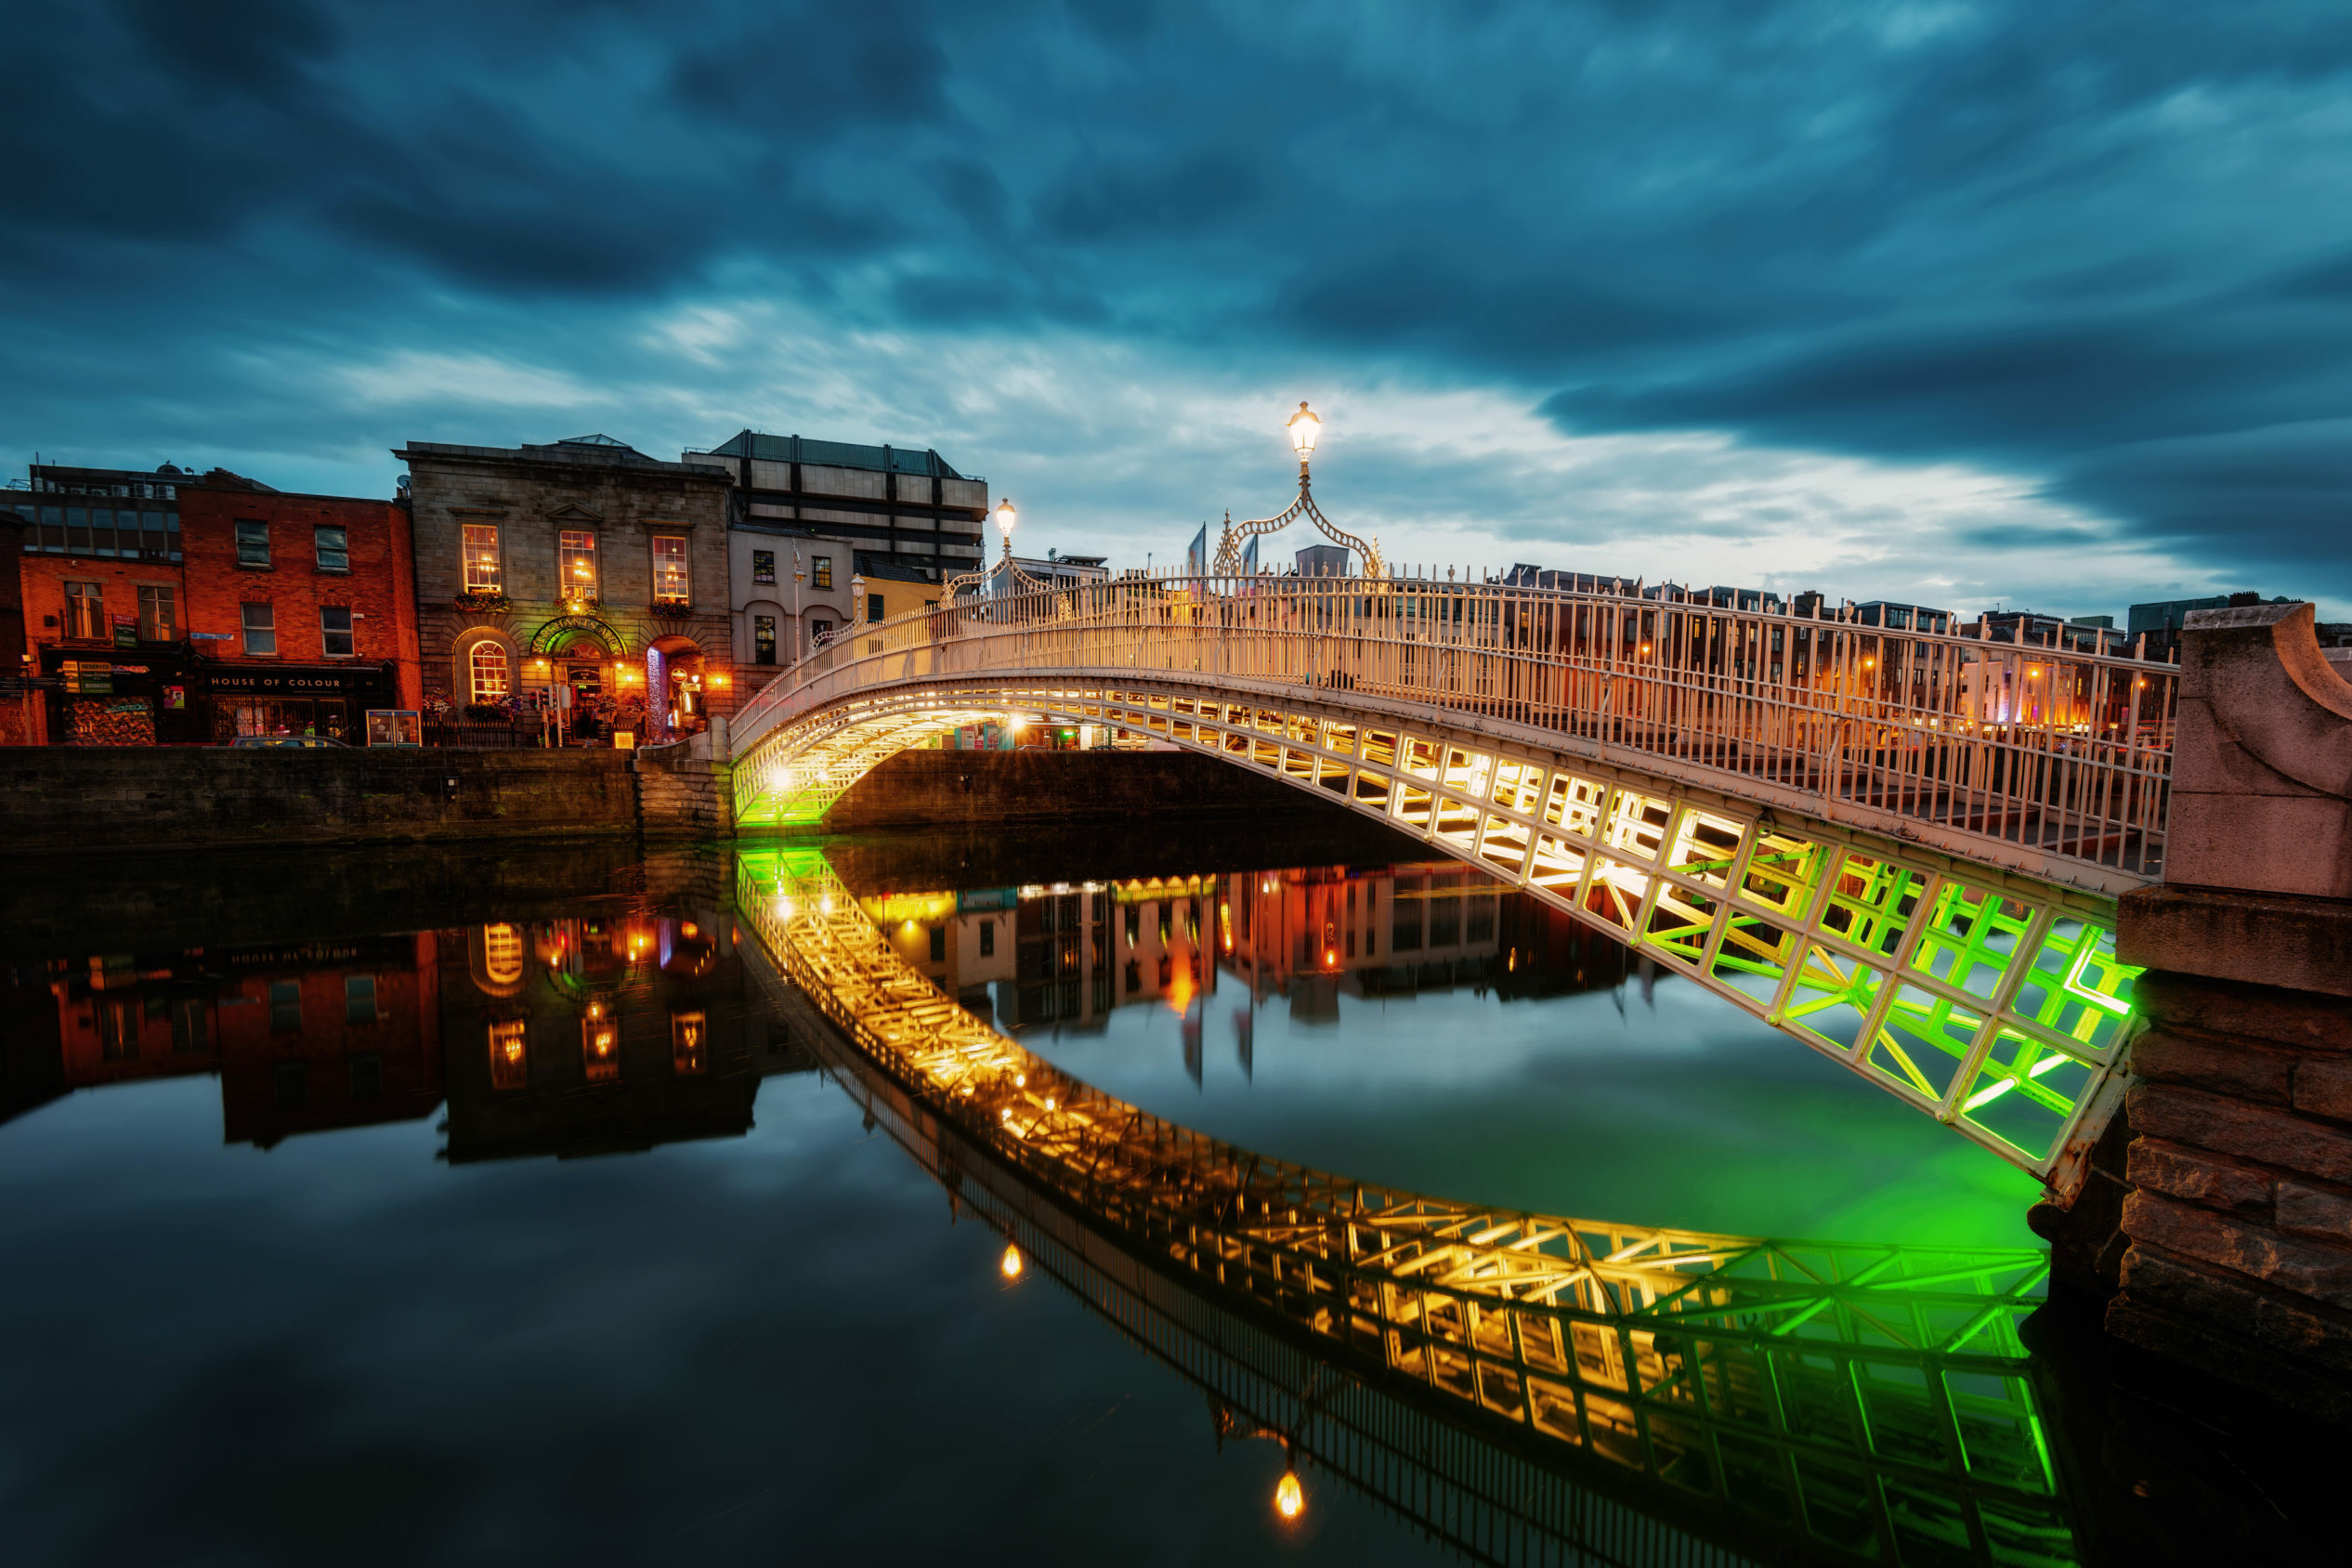 Irland: beleuchtete Ha'penny Bridge in Dublin